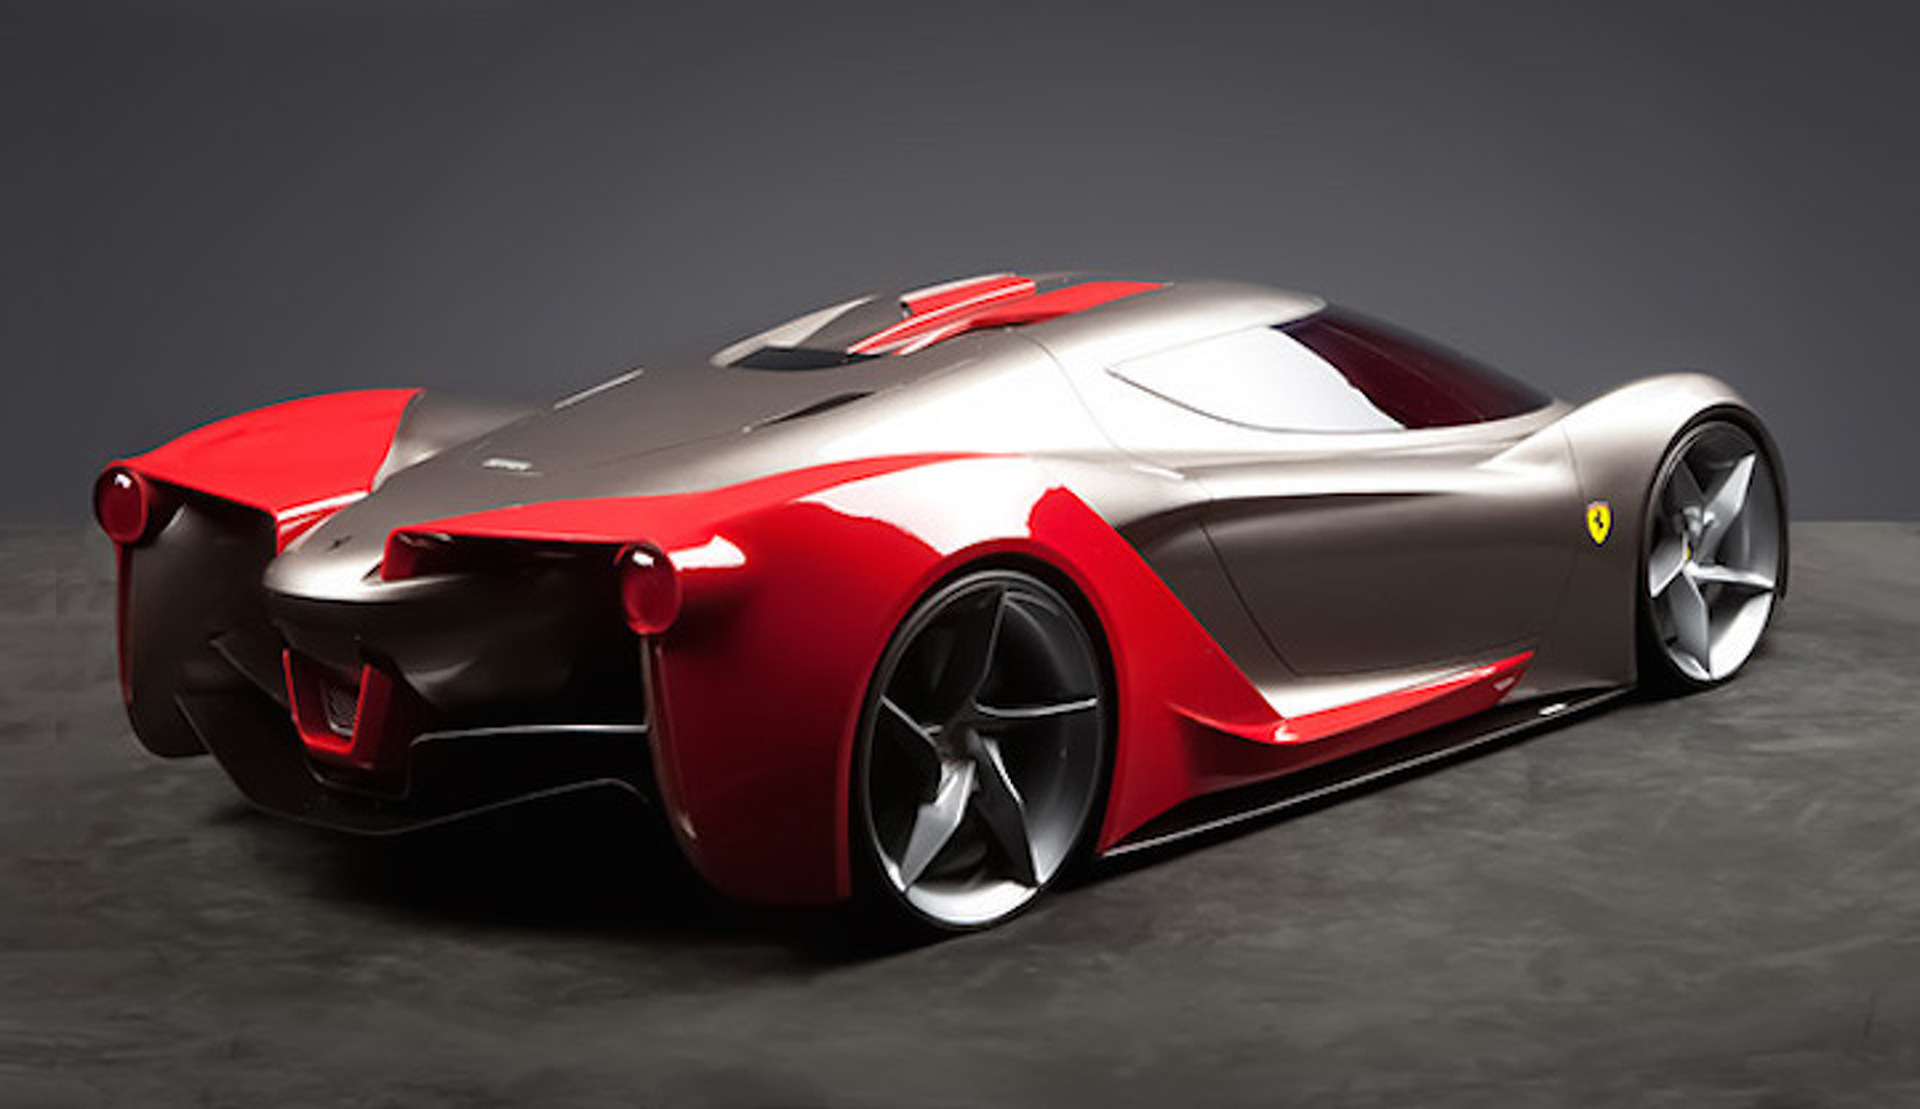 Cars Of The Future 12 Ferrari Concept Cars That Could Preview The Future Of